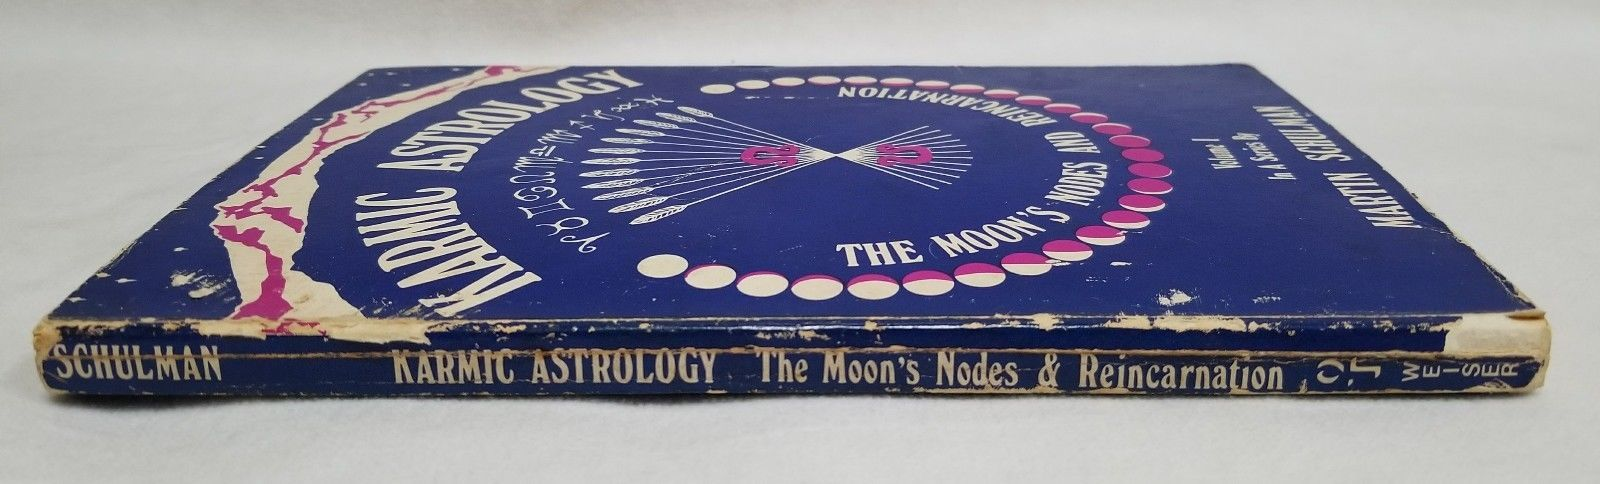 Karmic Astrology The Moon's Nodes and Reincarnation Volume 1 by Martin Schulman image 2